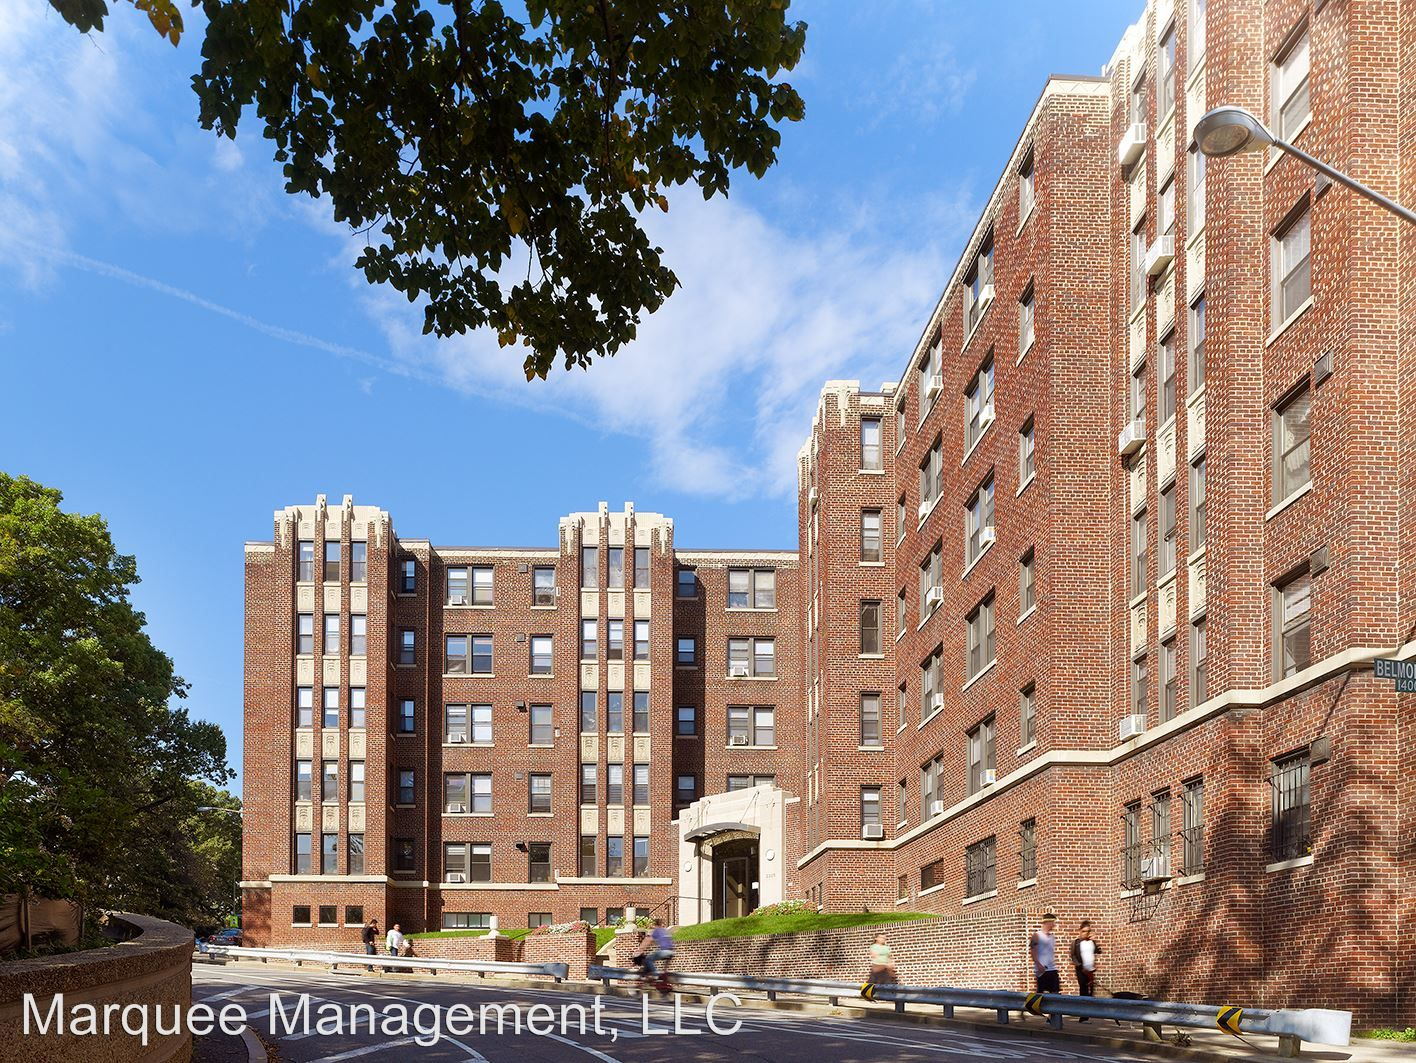 2325 15th Street, NW for rent